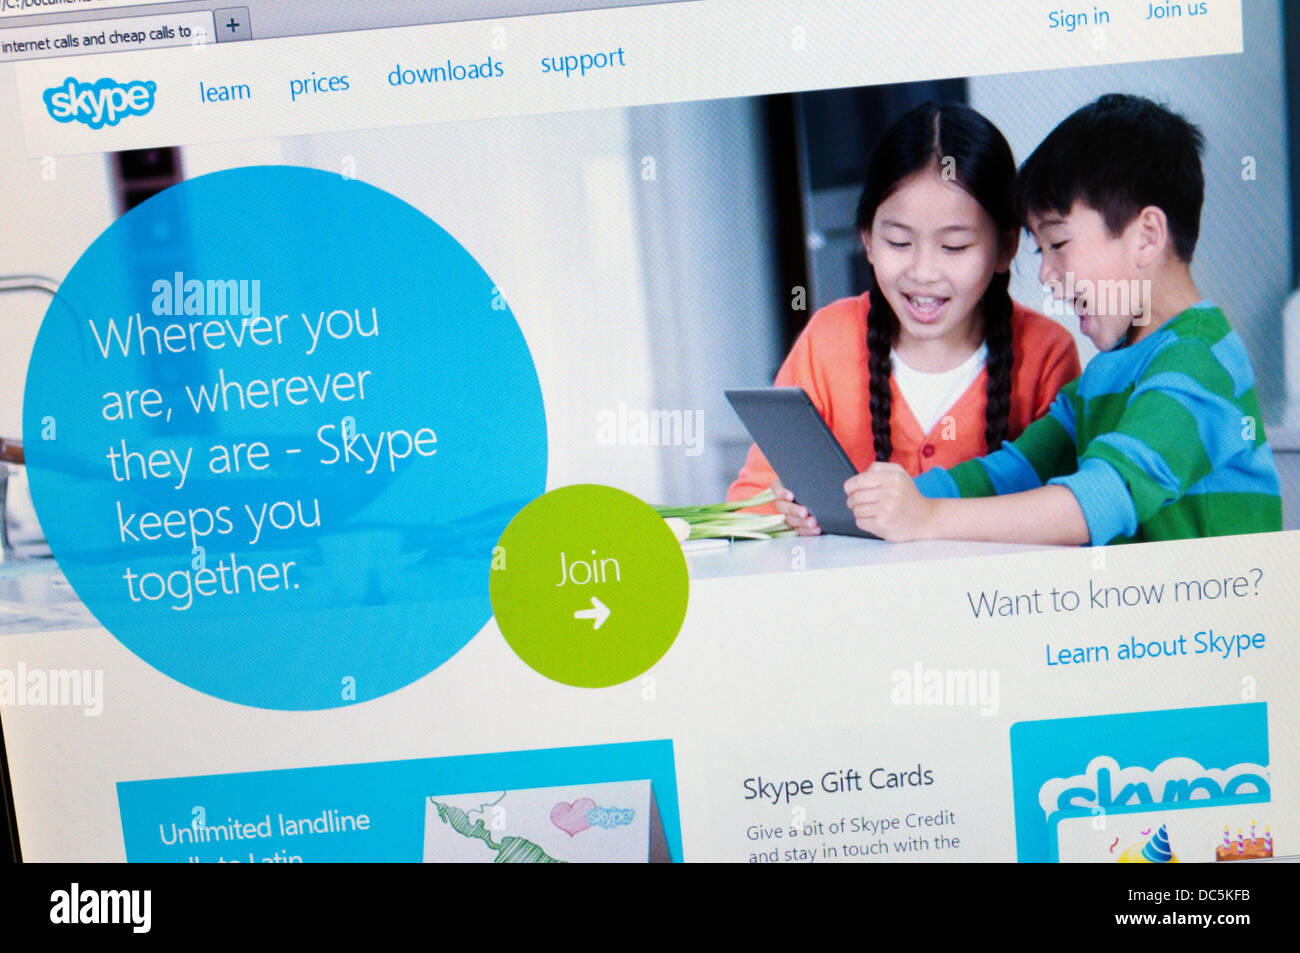 The home page of the Skype website. - Stock Image